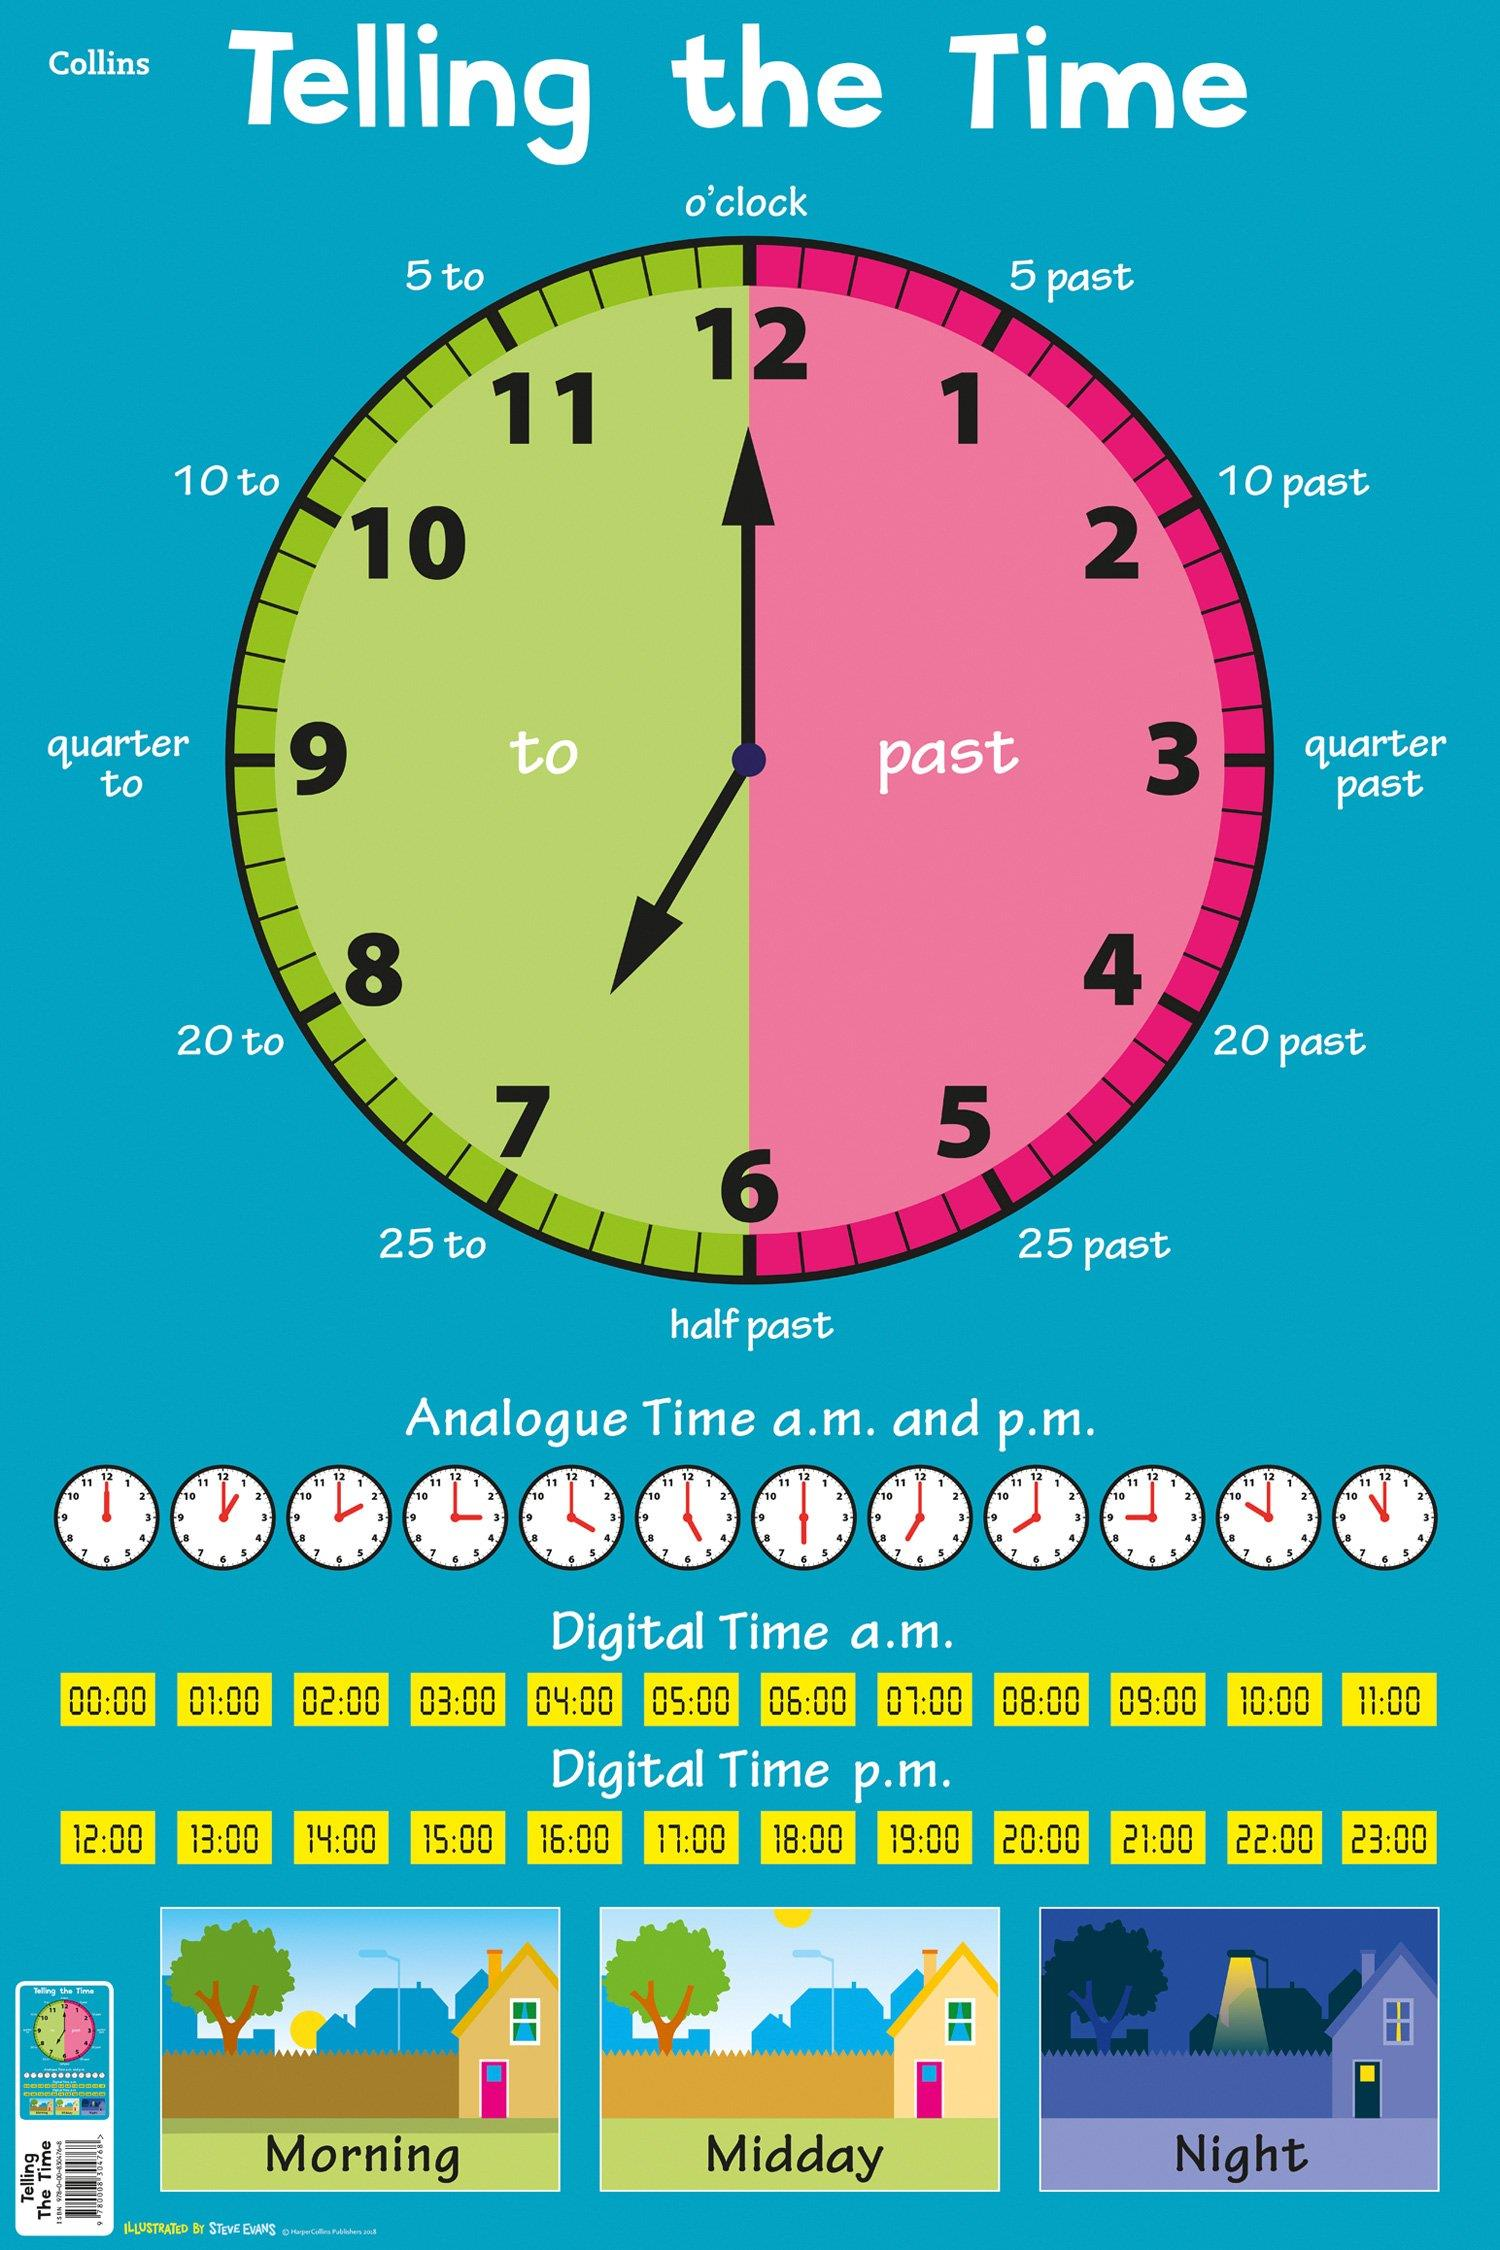 Telling the Time (Collins Children's Poster)